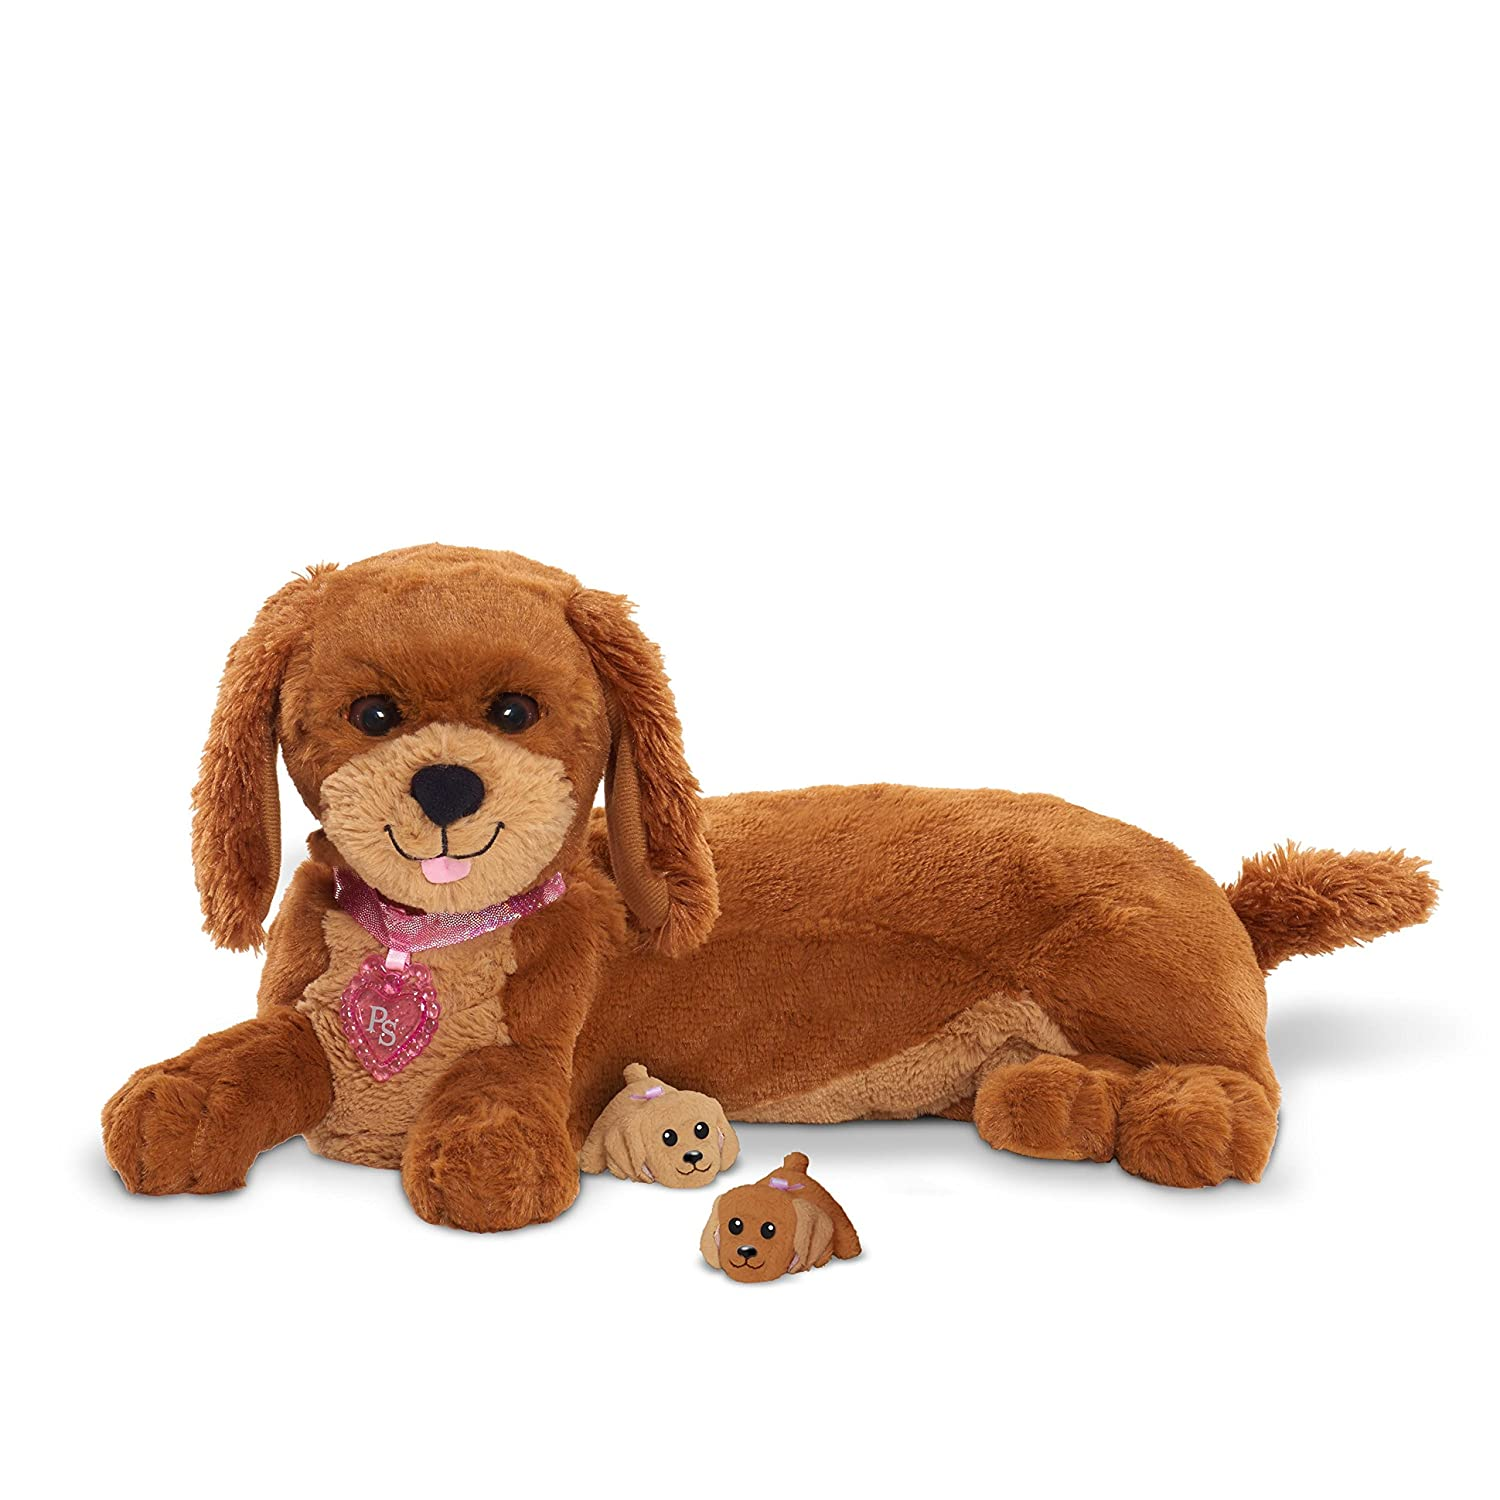 2477b2eeae3b Amazon.com: Puppy Surprise Magic Mommy Surprise Animated Plush Toy, Brown:  Toys & Games